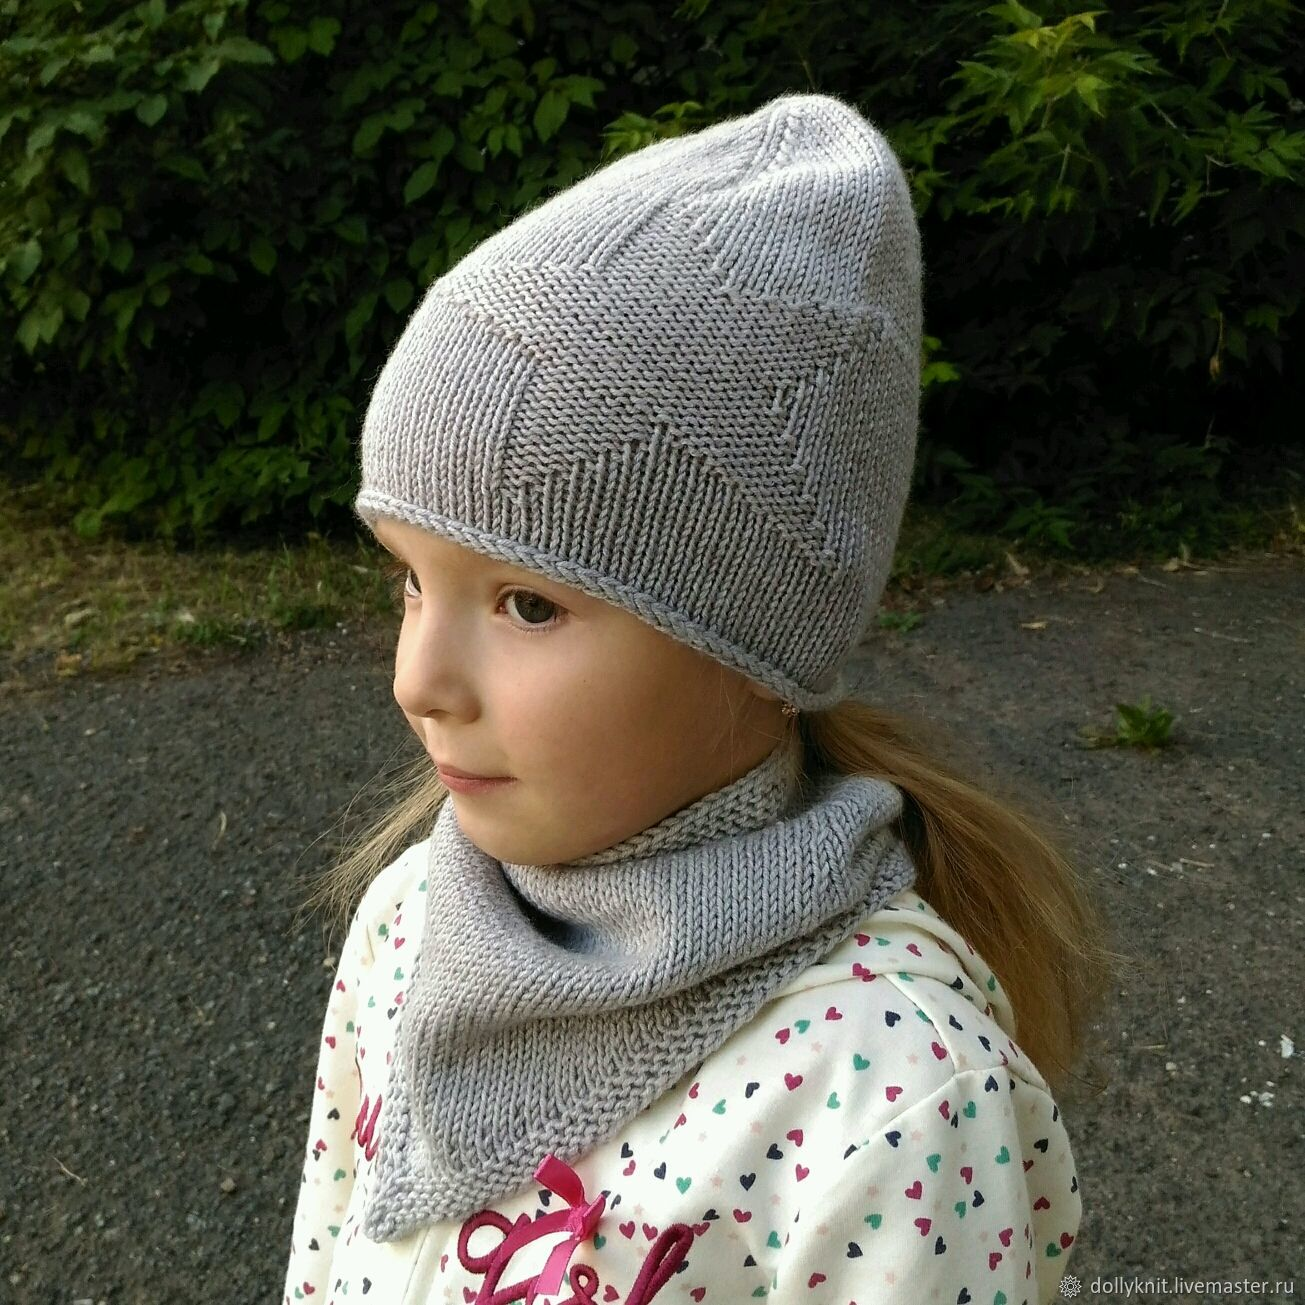 hat with a star cap in stock, star cap cap knitted